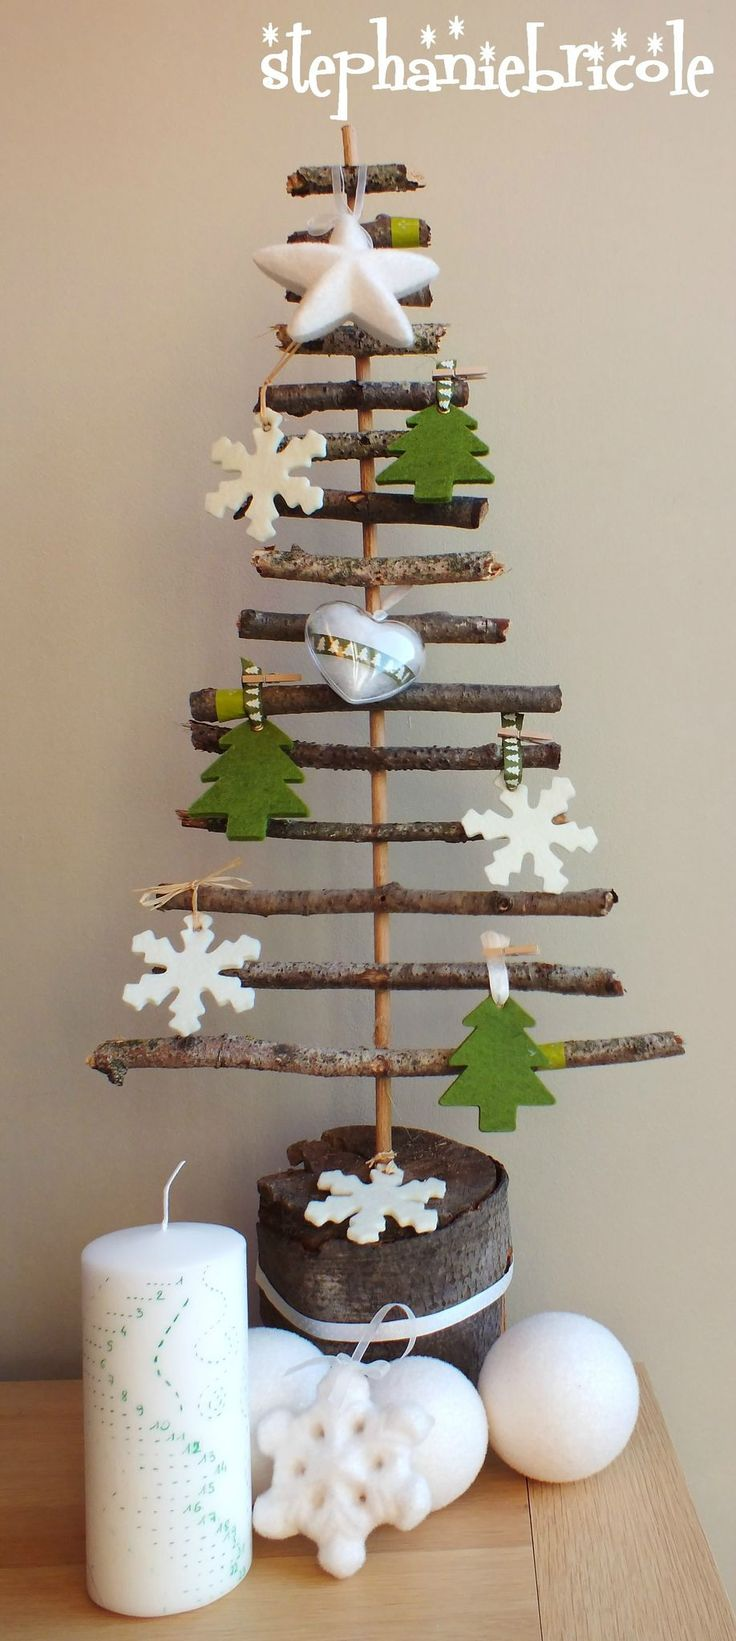 Les 25 meilleures id es de la cat gorie deco noel nature sur pinterest d co no l nature diy - Sapin de noel diy ...